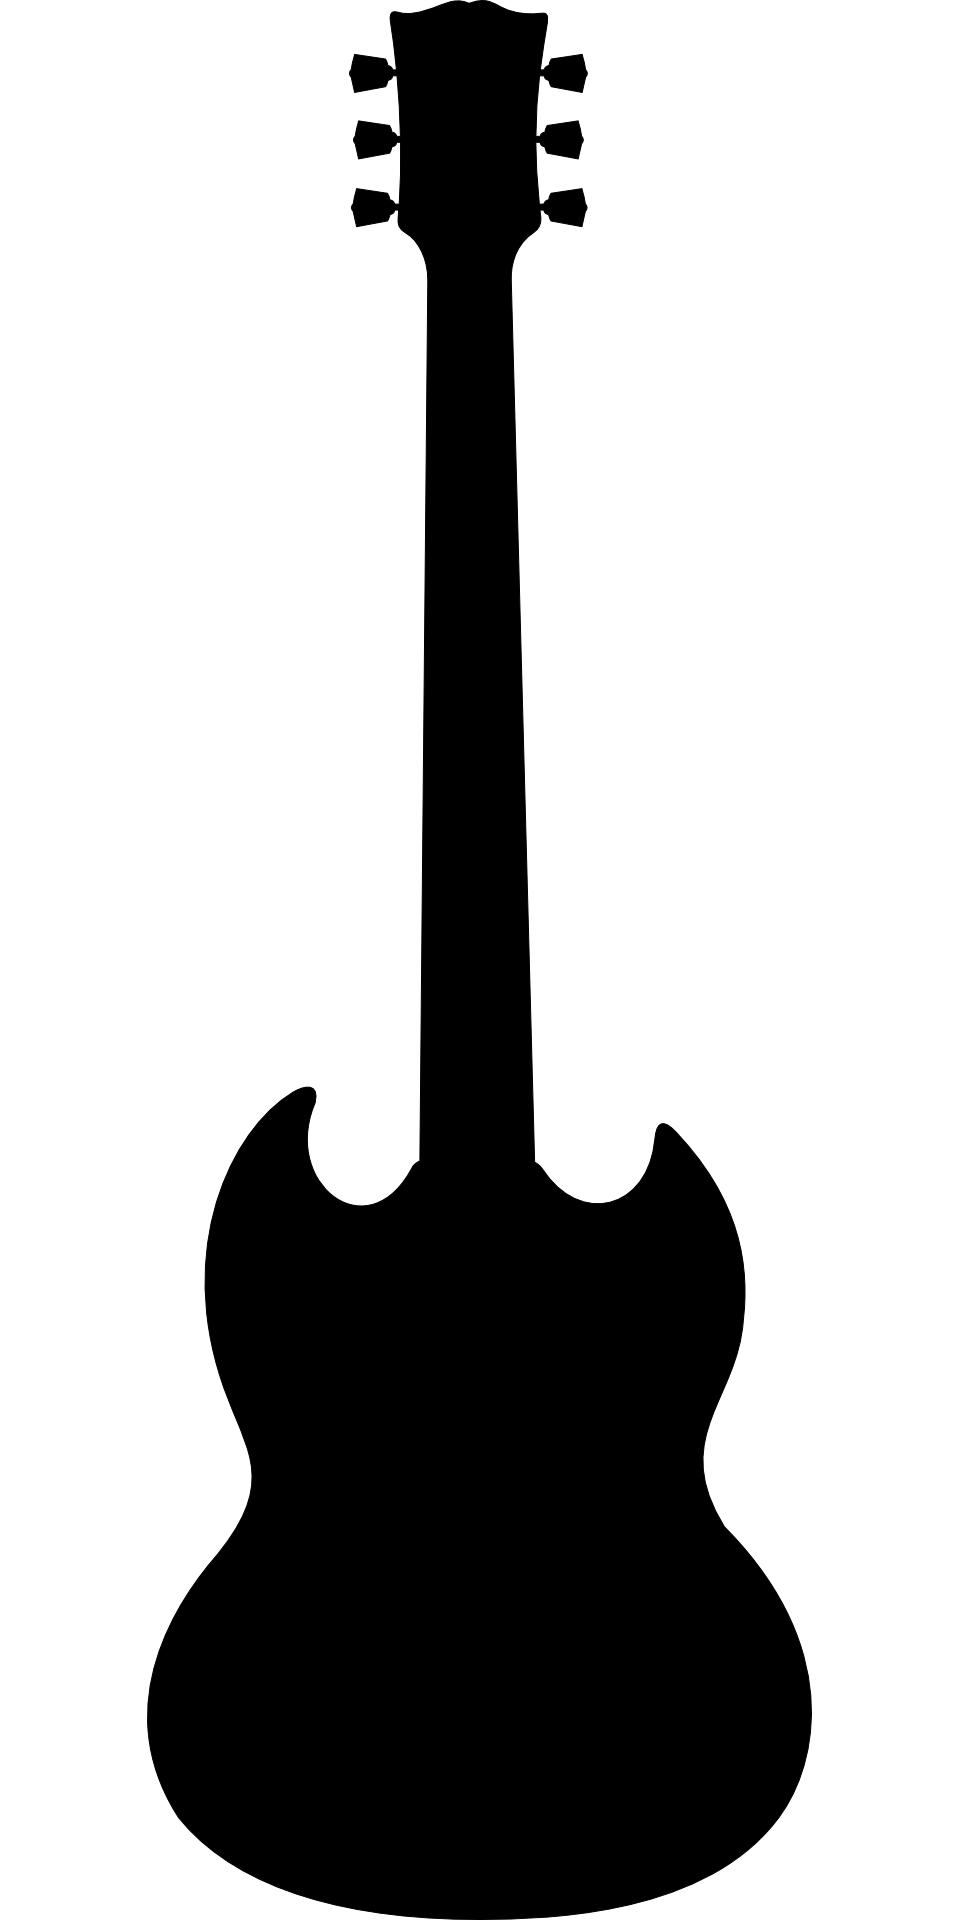 960x1920 Silhouette Of Gibson Guitar Free Image